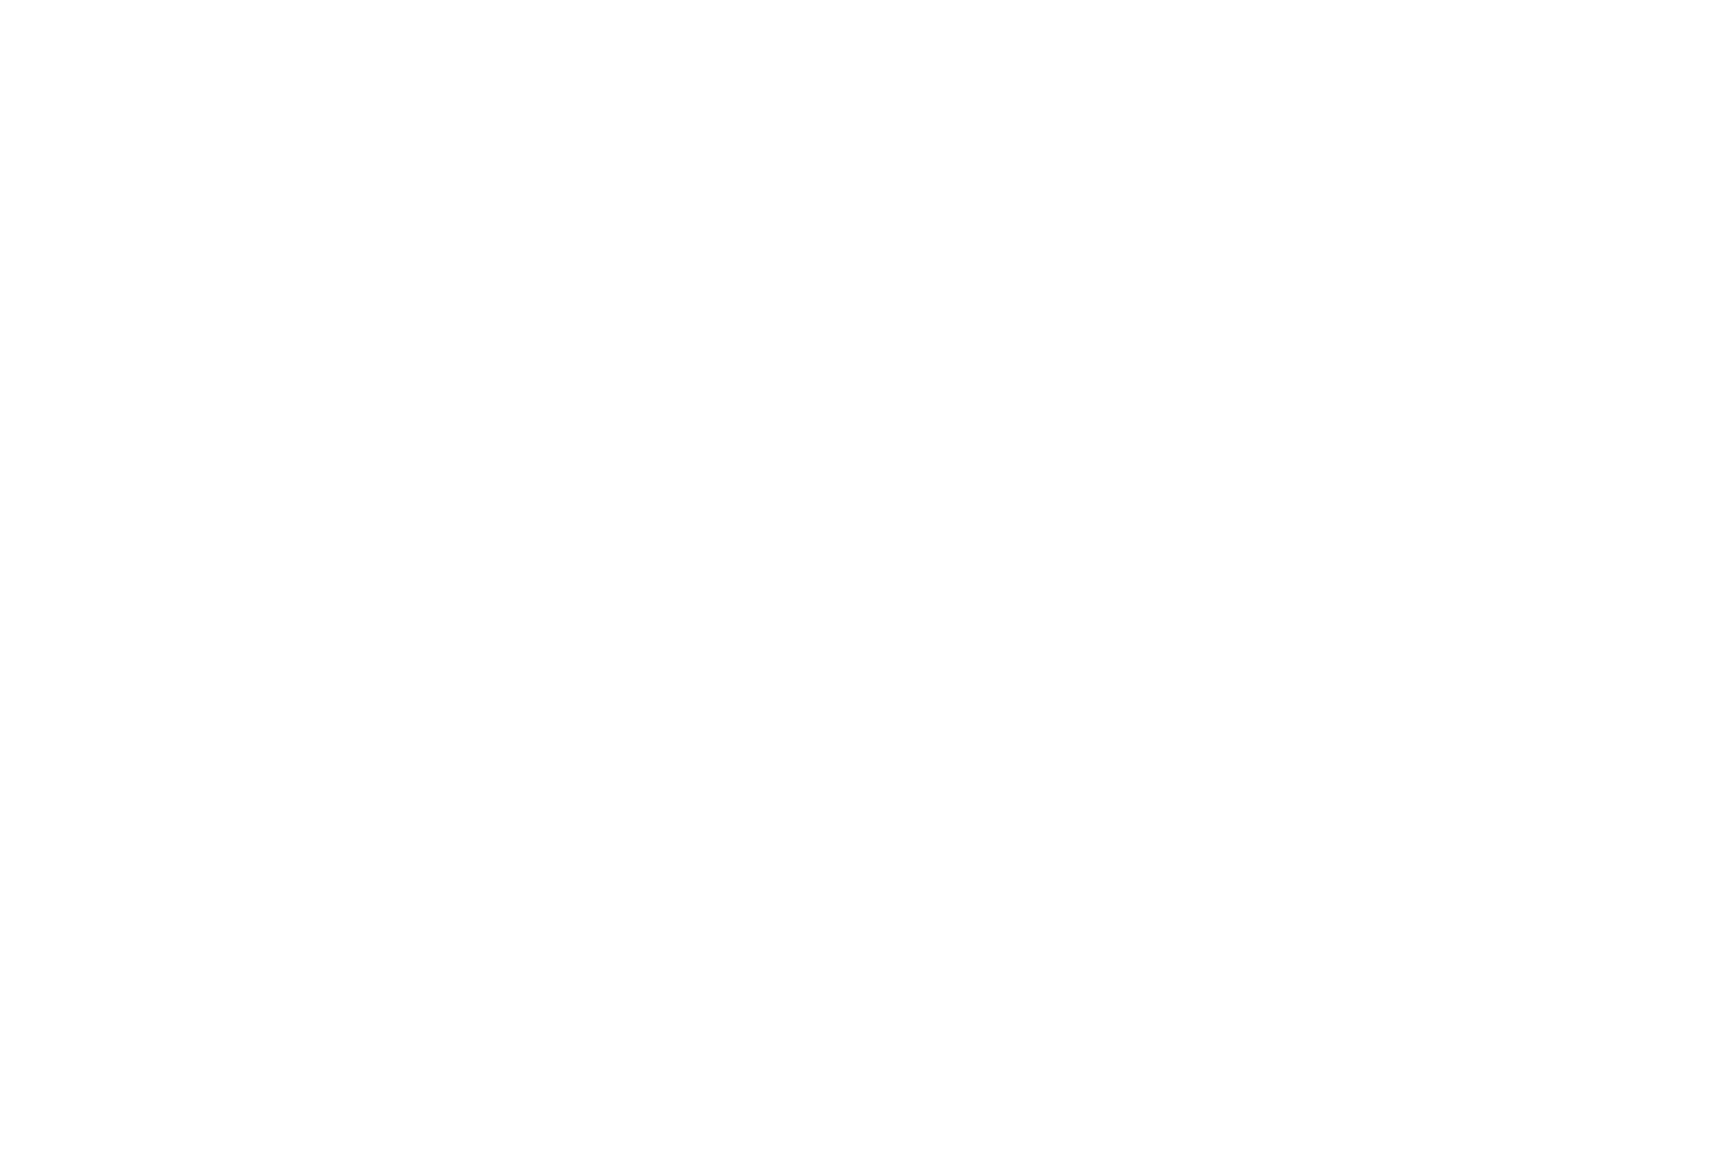 2nd PLACE - Spooky Movie DC International Film Festival Screenplay Awards